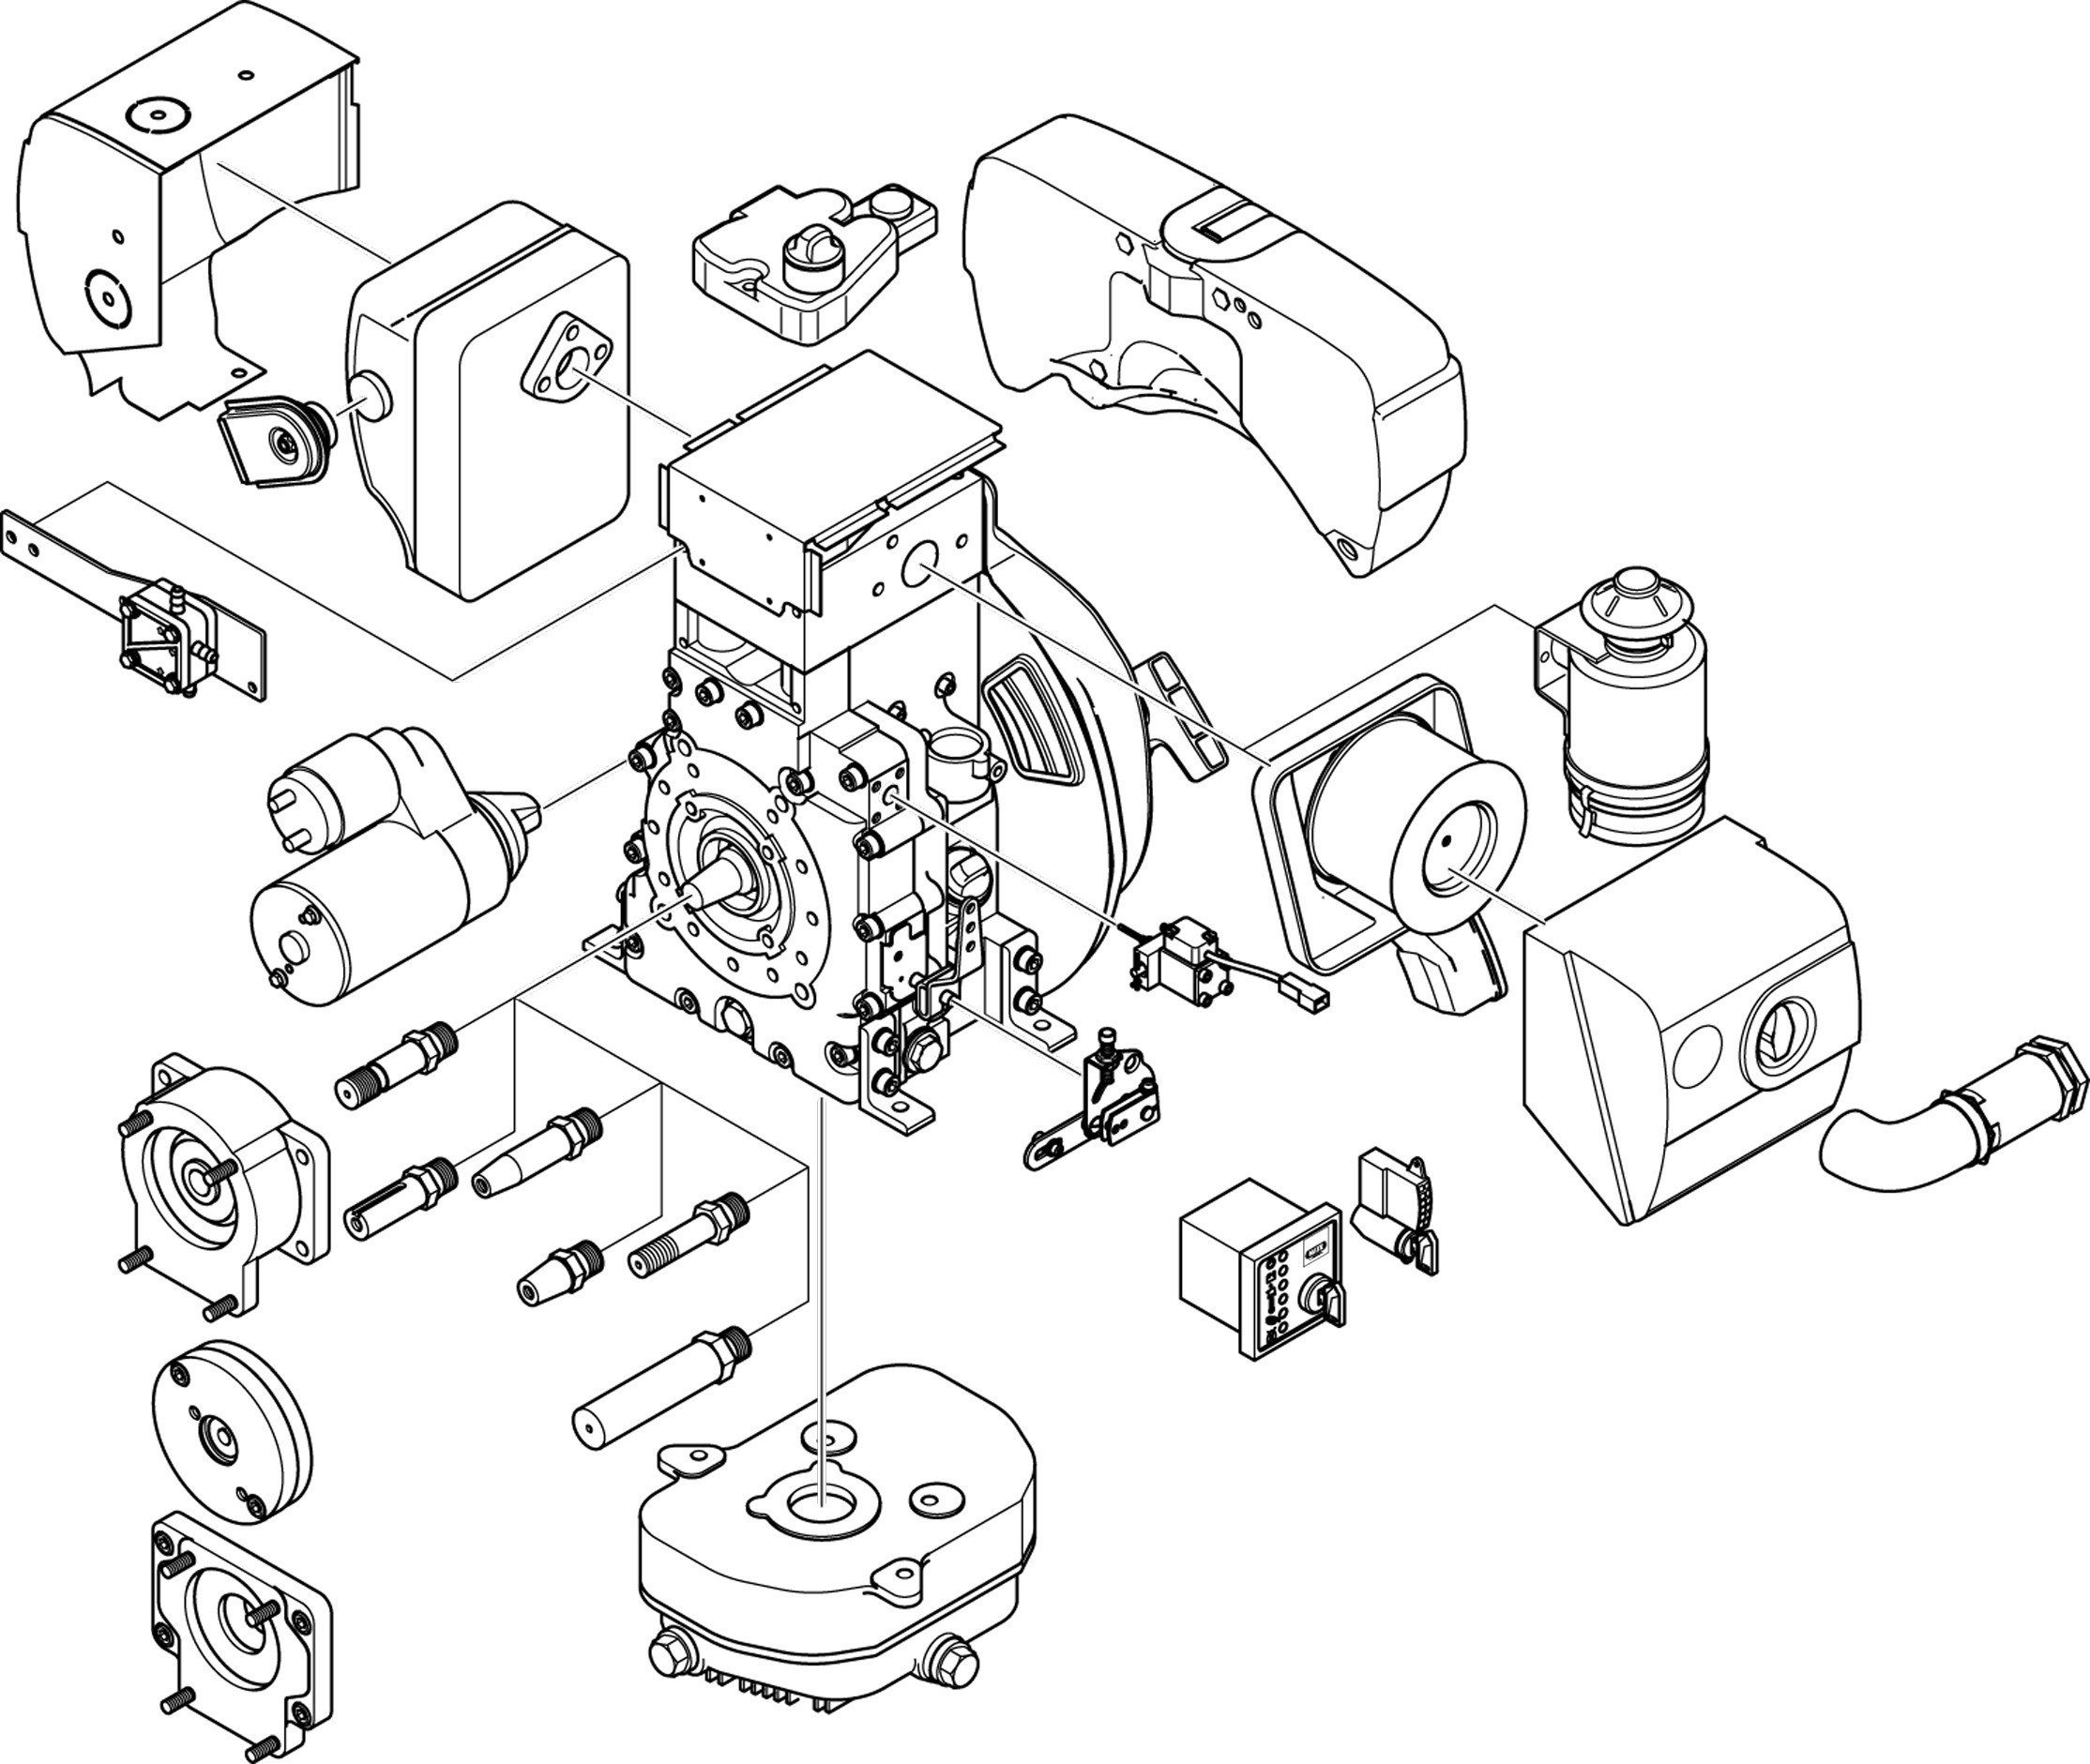 Kubota Engine Parts Diagram Hatz Diesel Engine Workshop Manual How to Troubleshooting \u0026 Manual Of Kubota